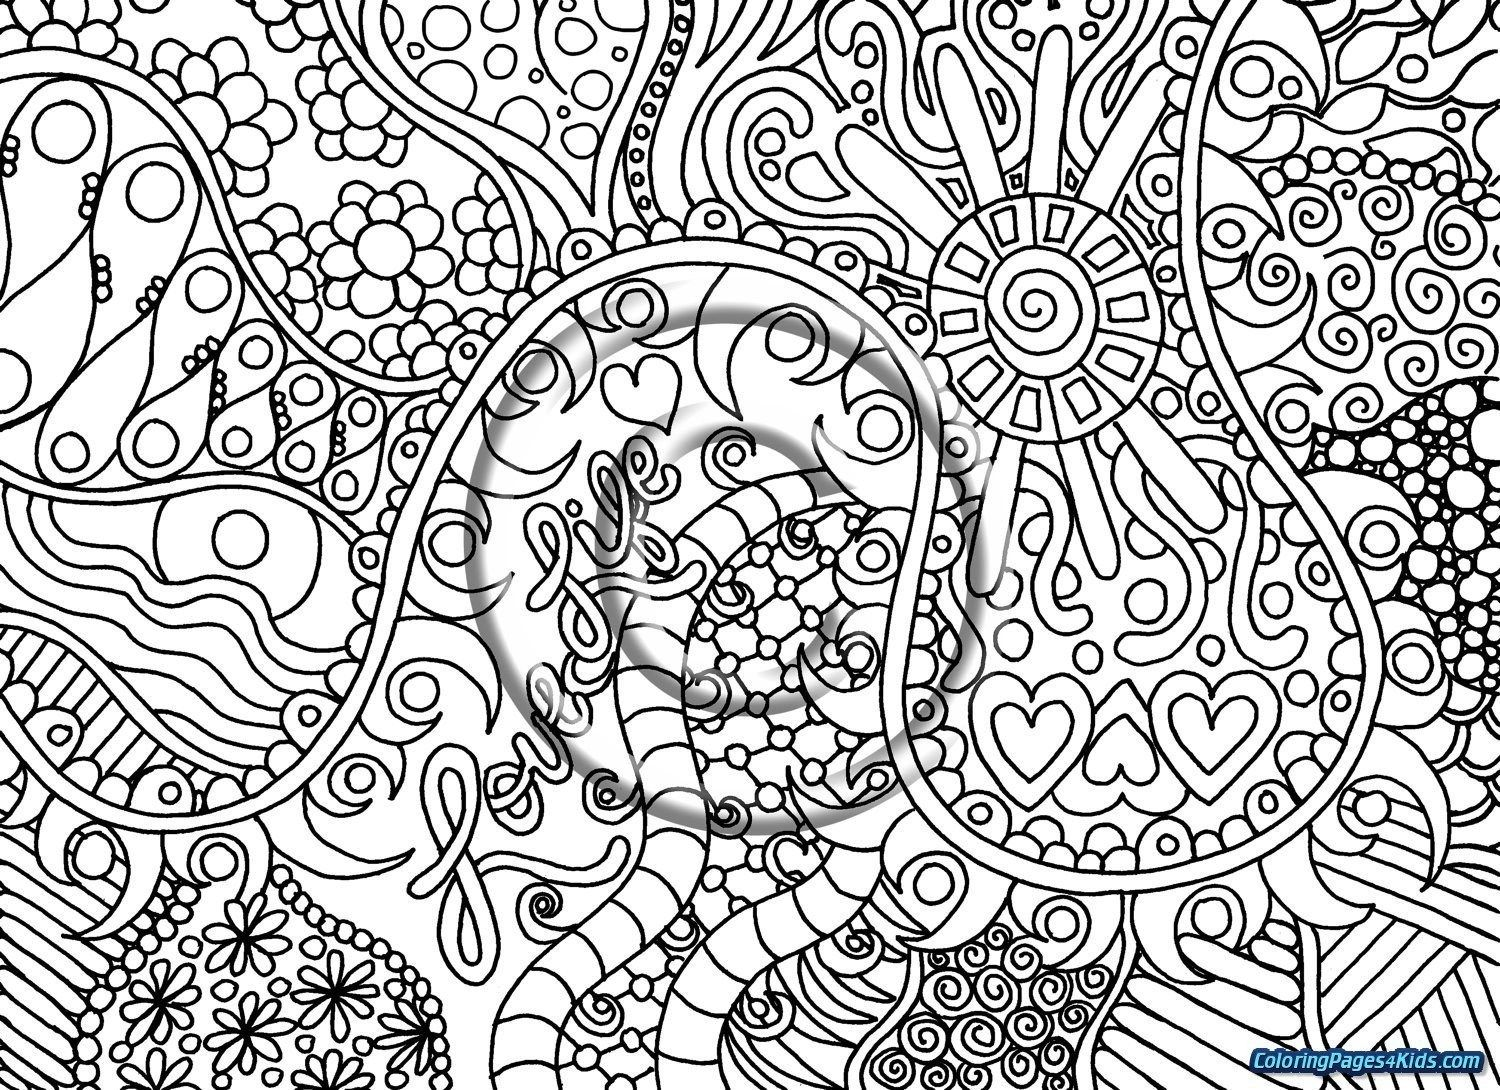 14++ Detailed trippy coloring pages for adults ideas